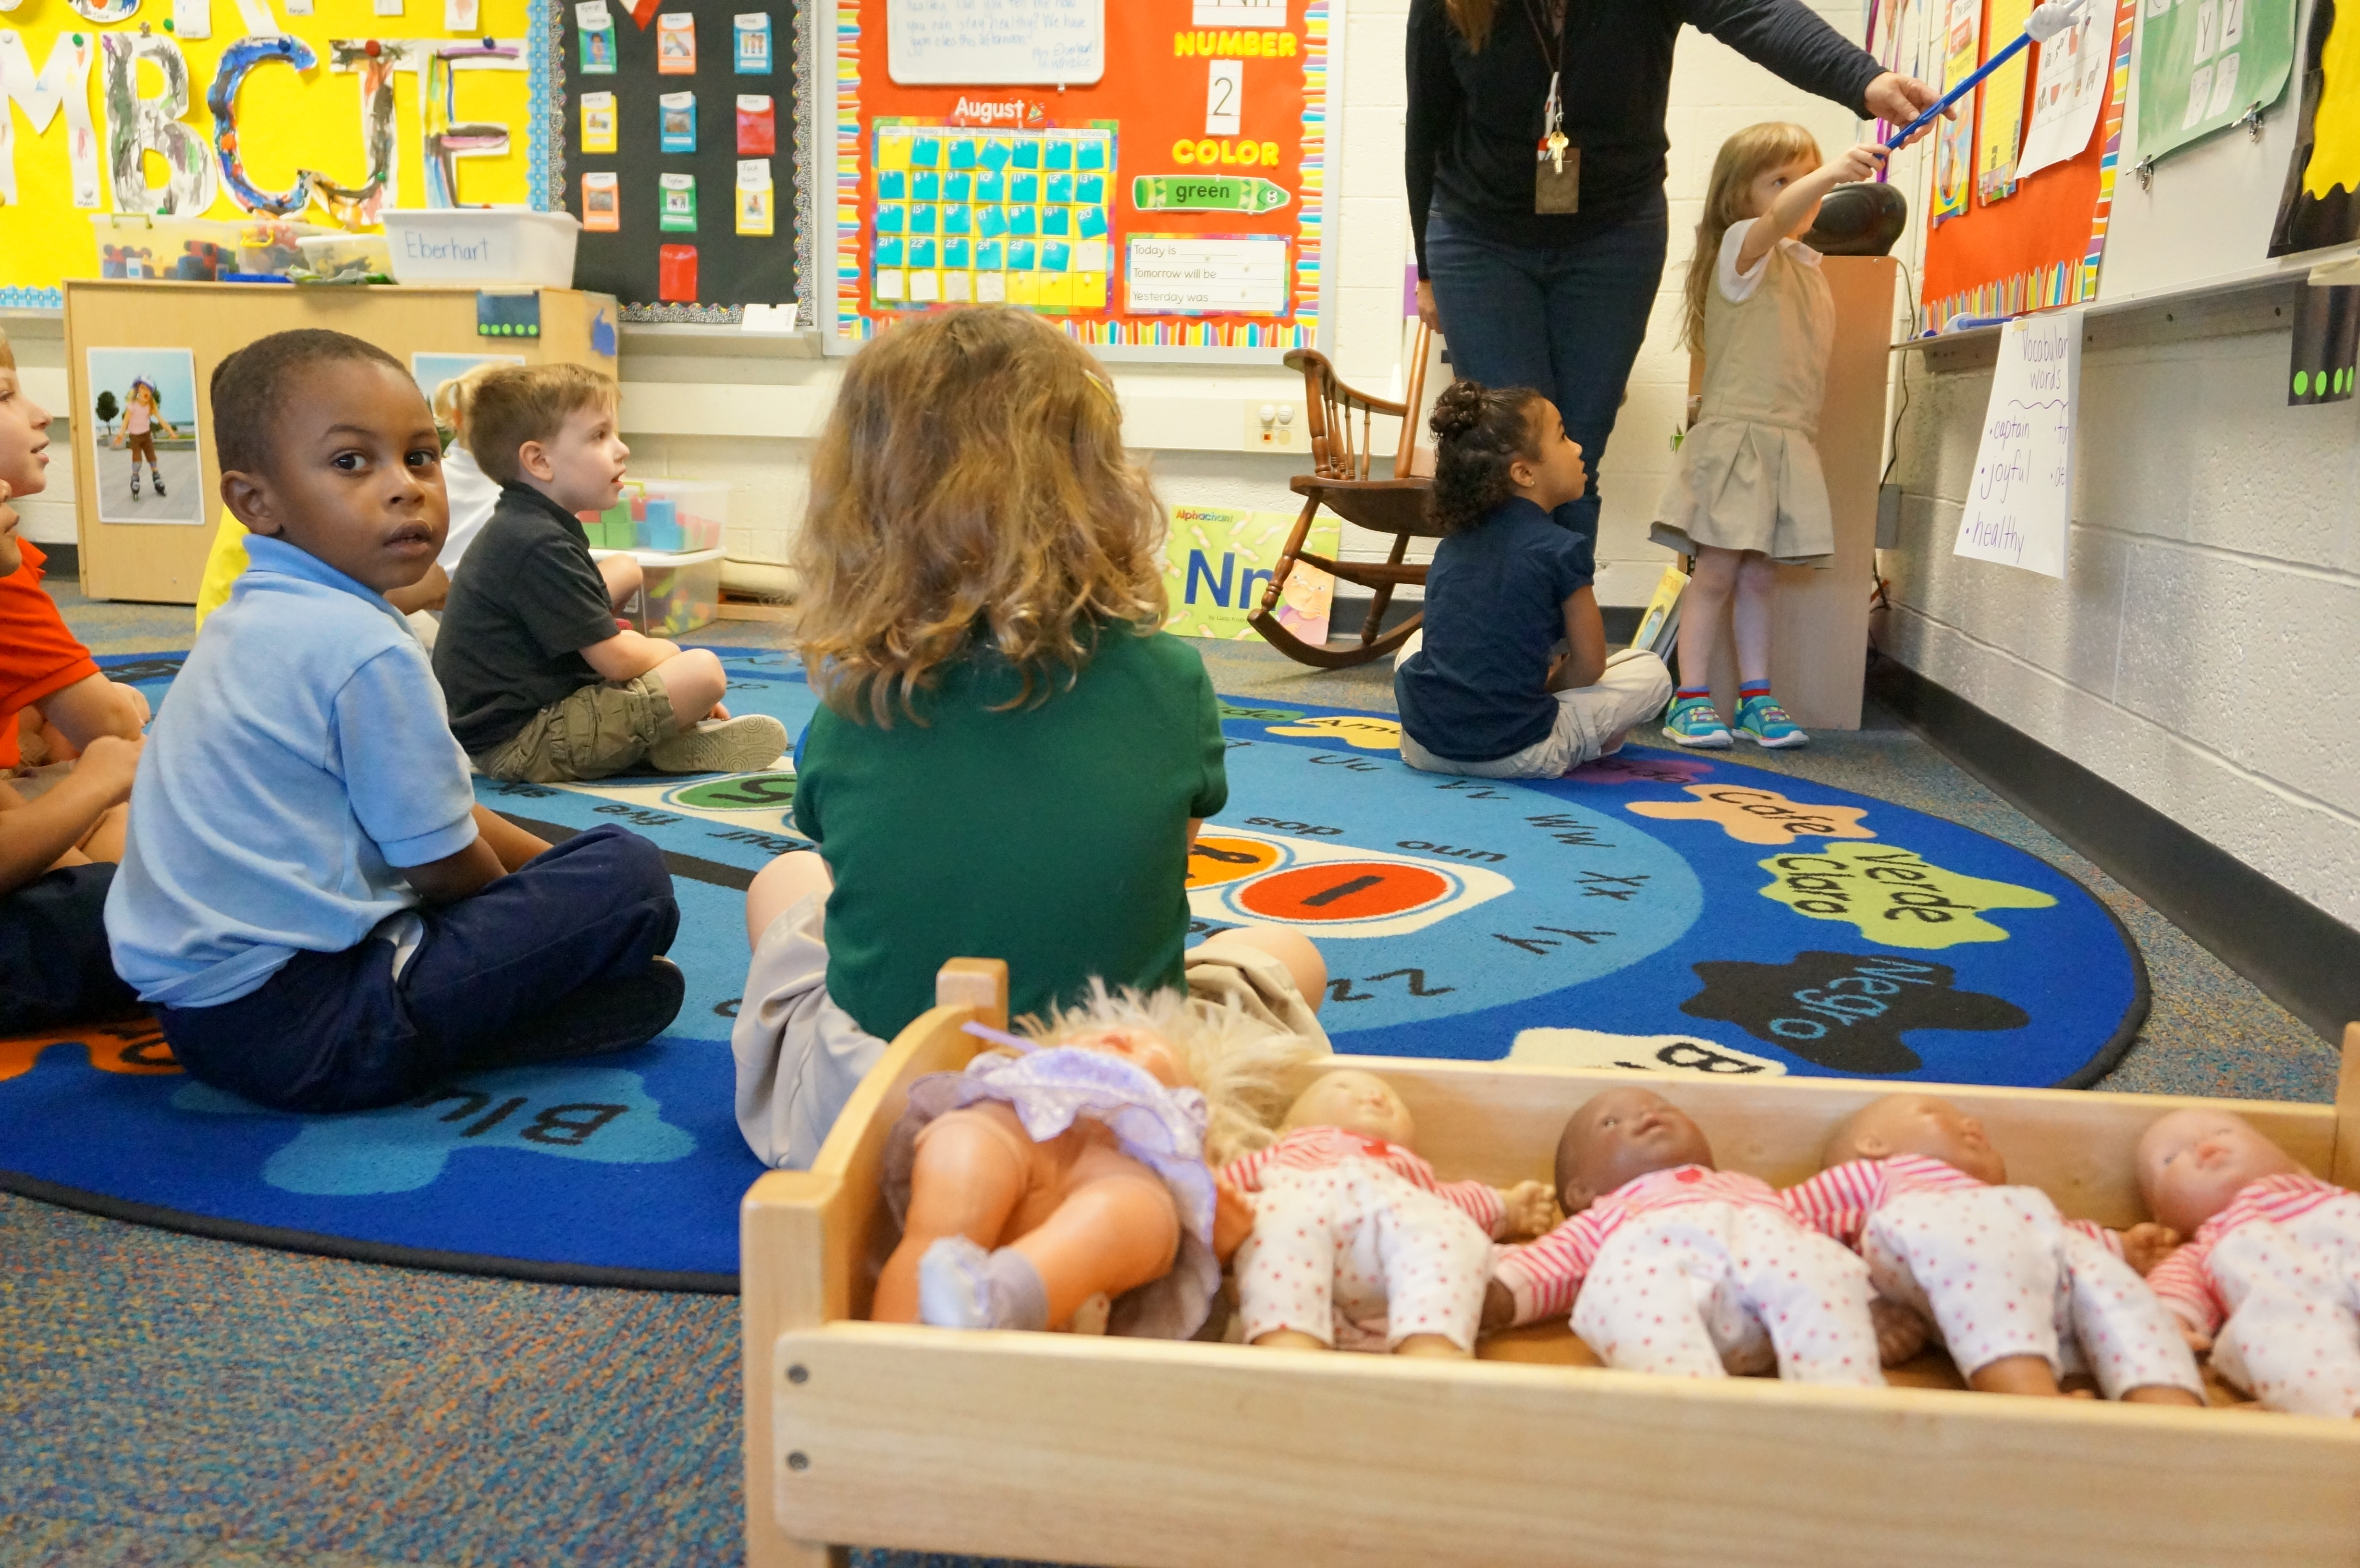 A group of six preschoolers participate in an exercise while a boy in a blue shirt looks back at the photographer. There is a row of dolls sitting in a wooden bin in the foreground.